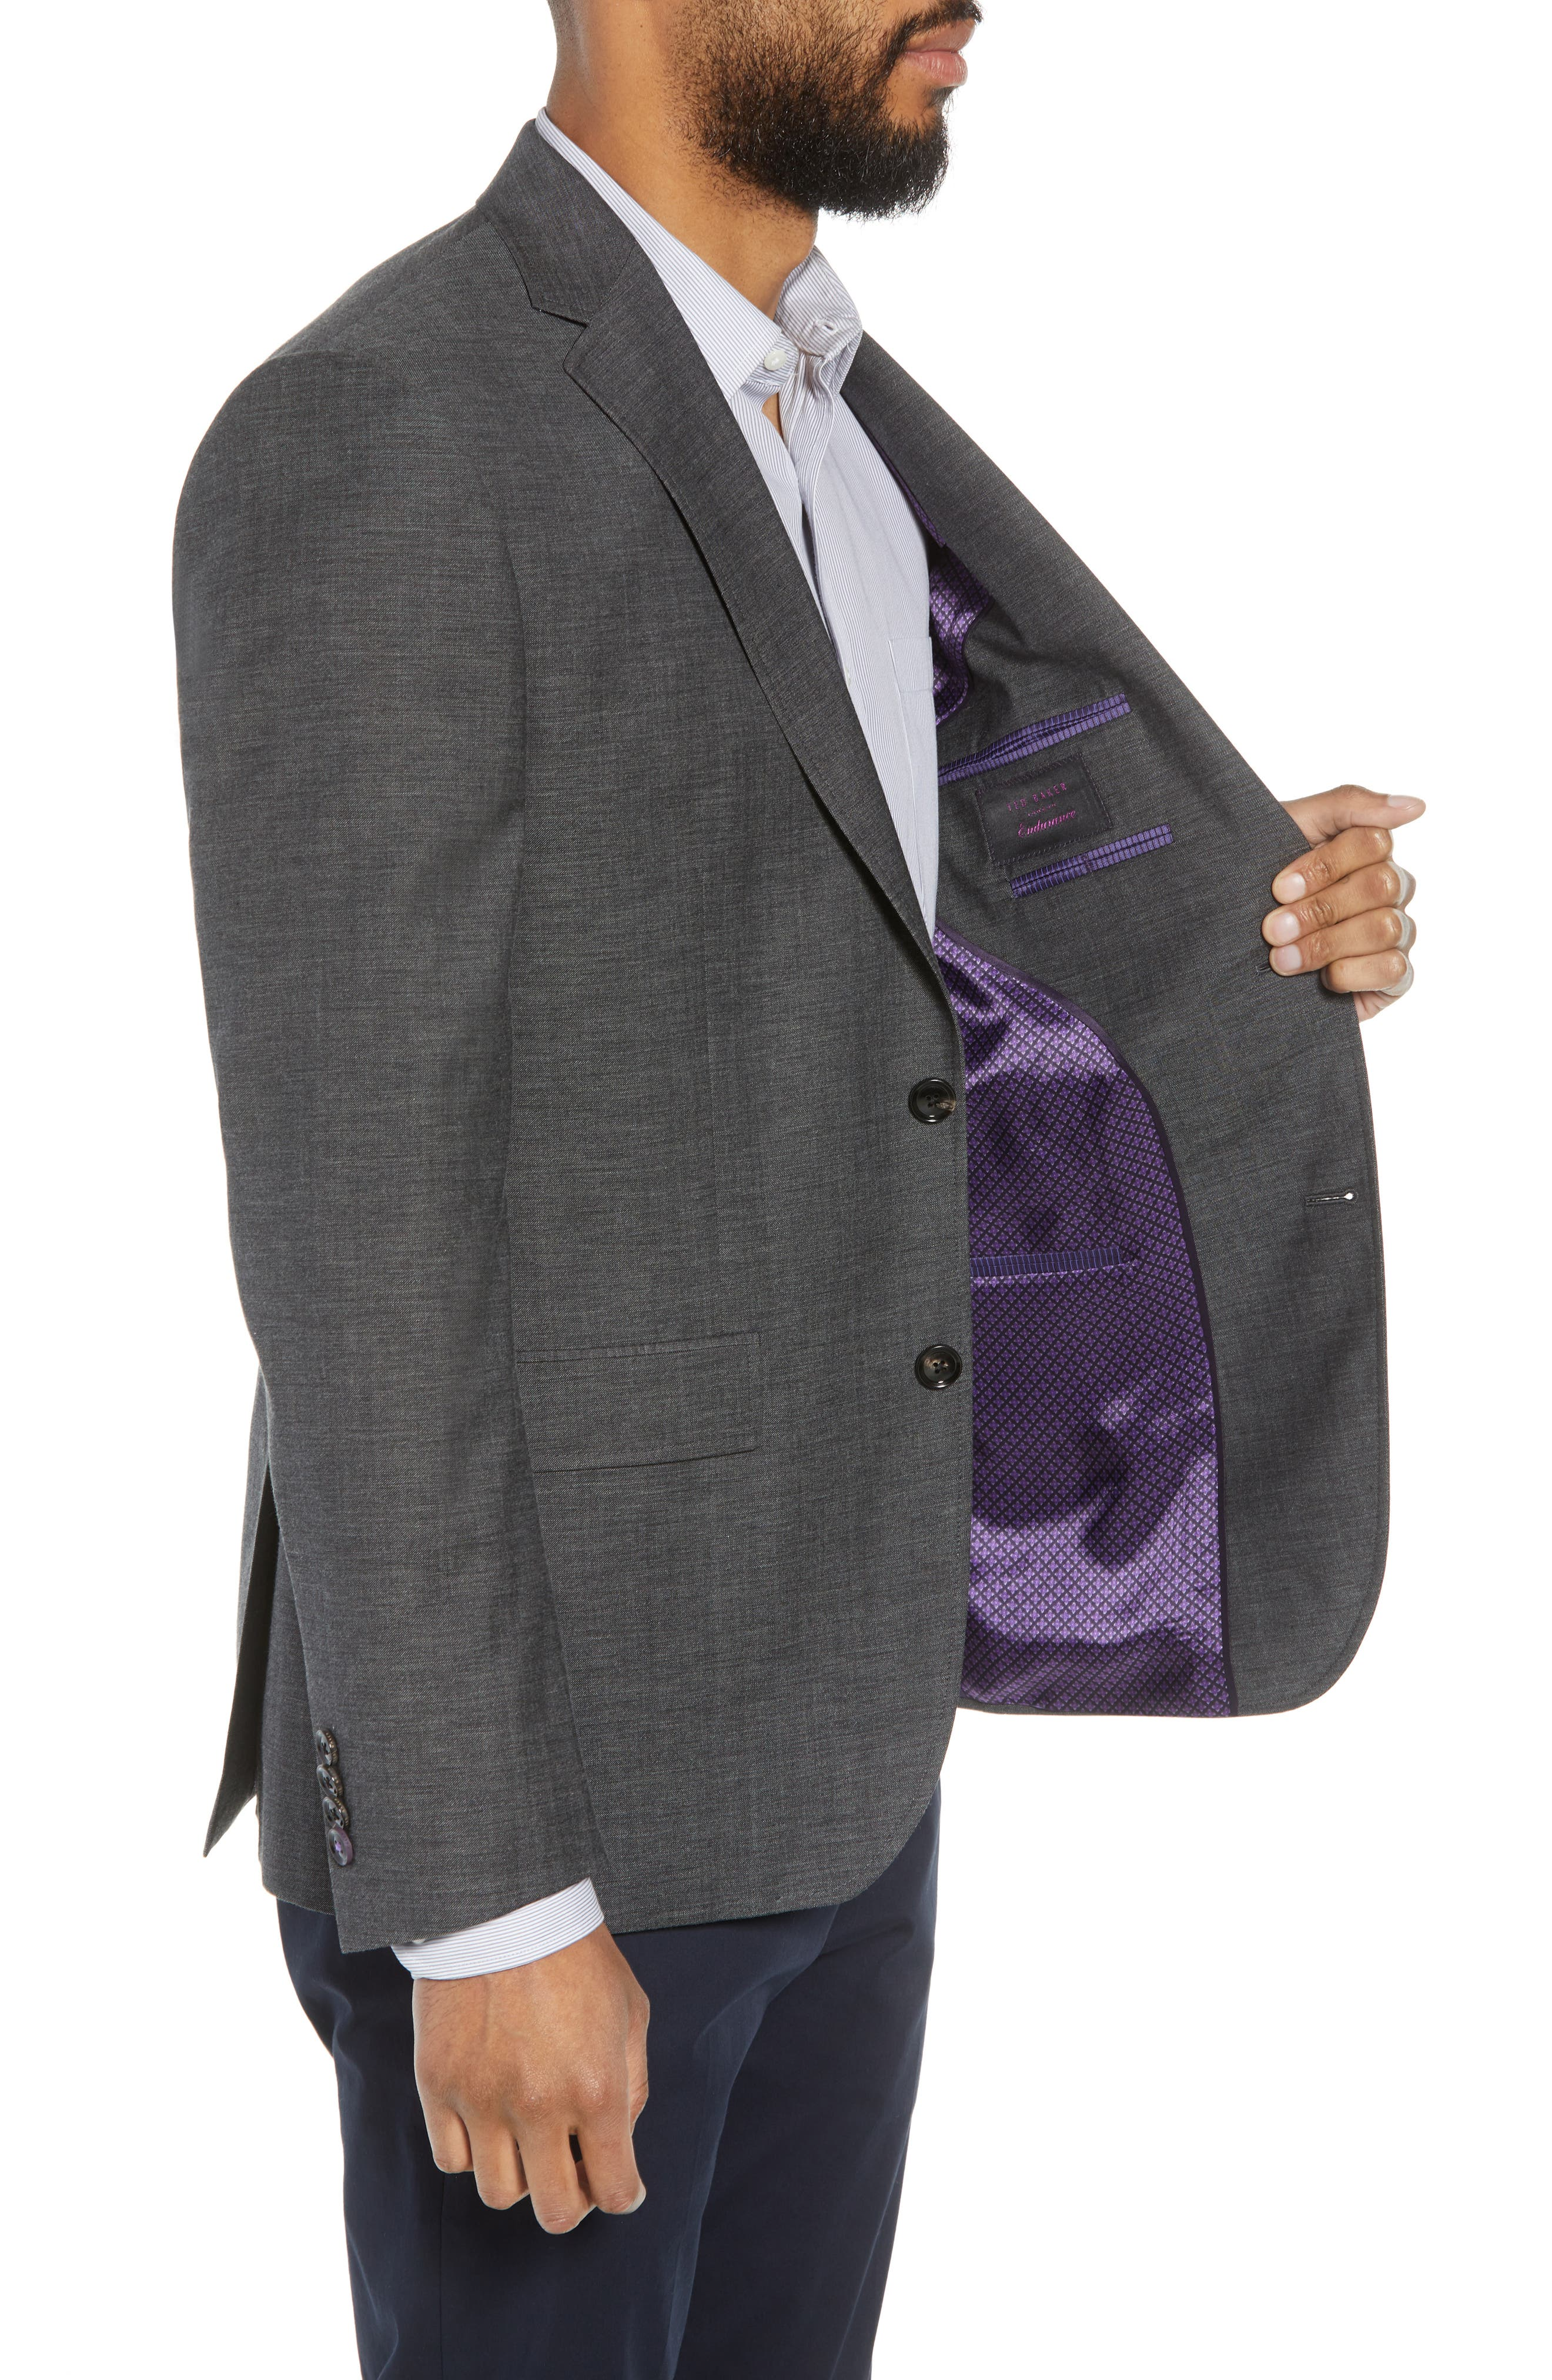 Jay Trim Fit Heathered Wool & Cotton Sport Coat,                             Alternate thumbnail 3, color,                             Grey